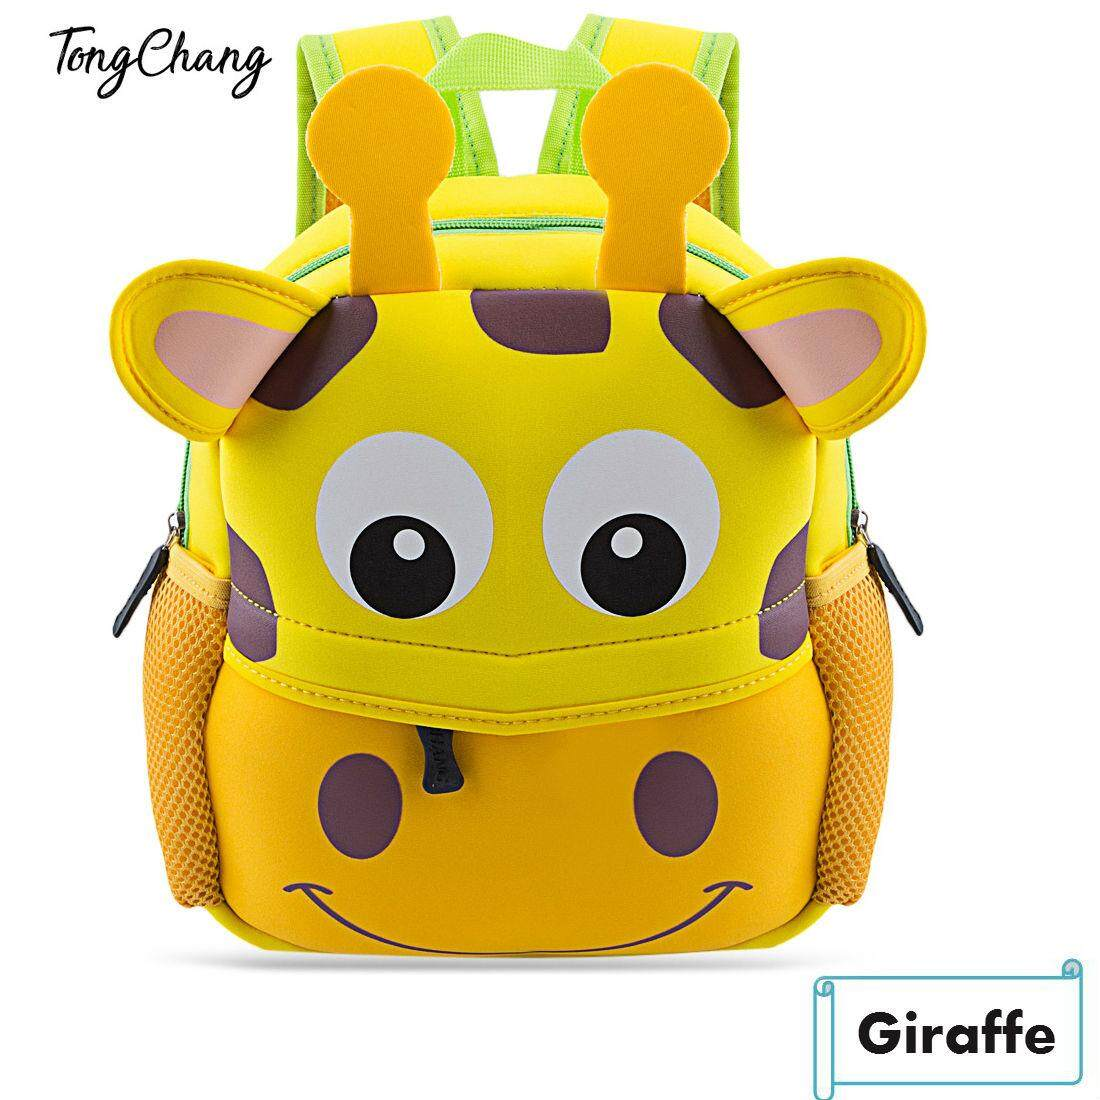 Tongchang Colorful Cartoon Animal Design Waterproof Durable Mini Llightweight Children School Bag Backpack Shoulder Back Book Storage Bag(giraffe Pattern) By Yinte.